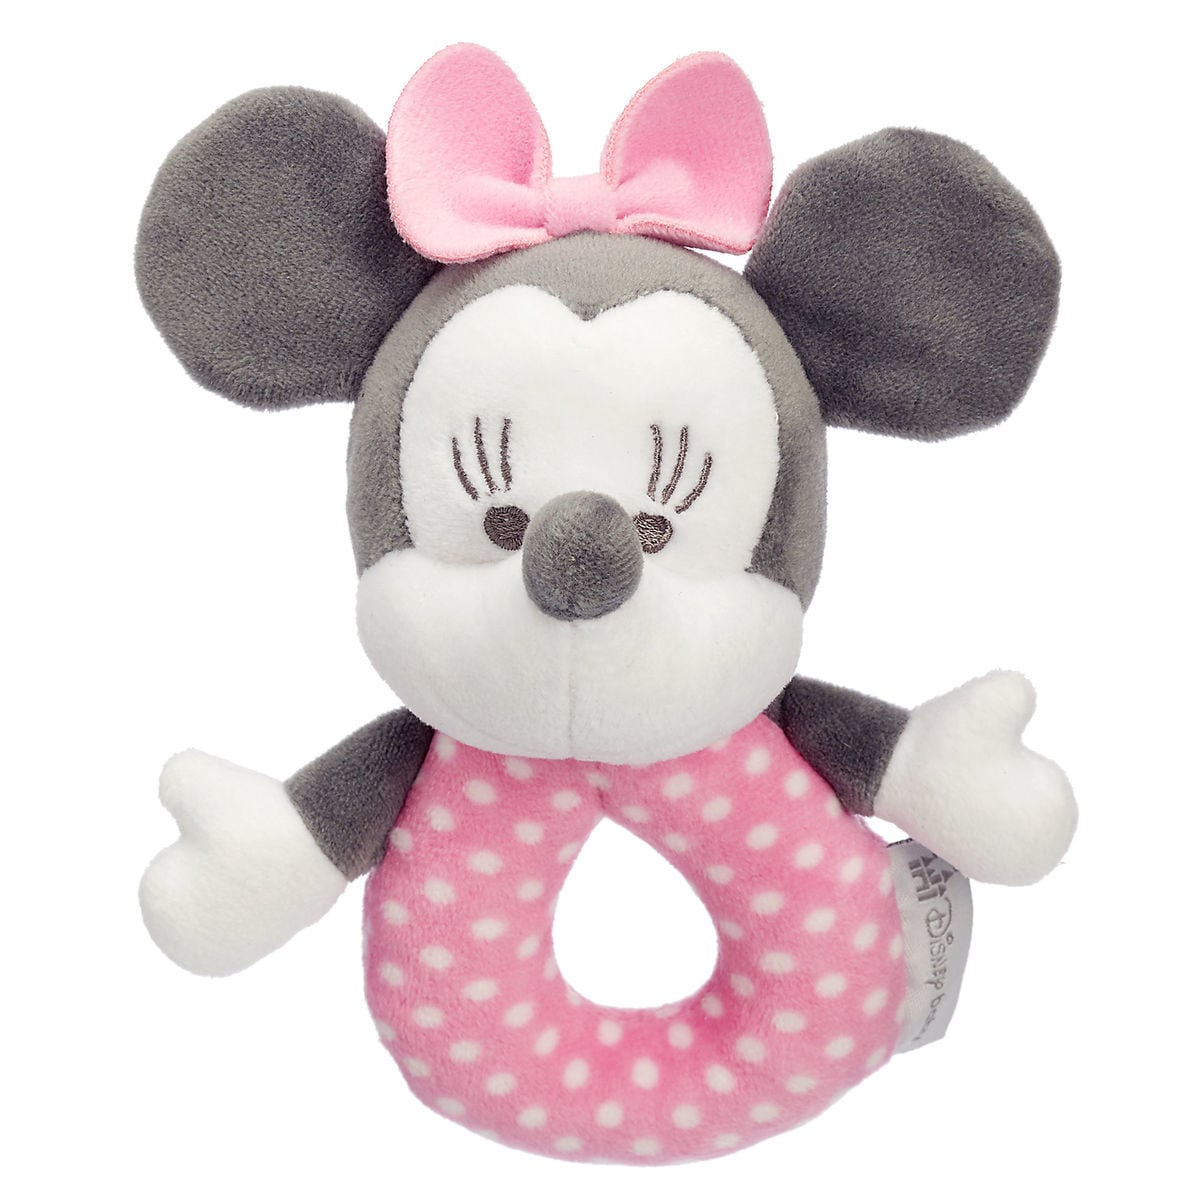 Minnie Mouse Plush Rattle For Baby Shopdisney